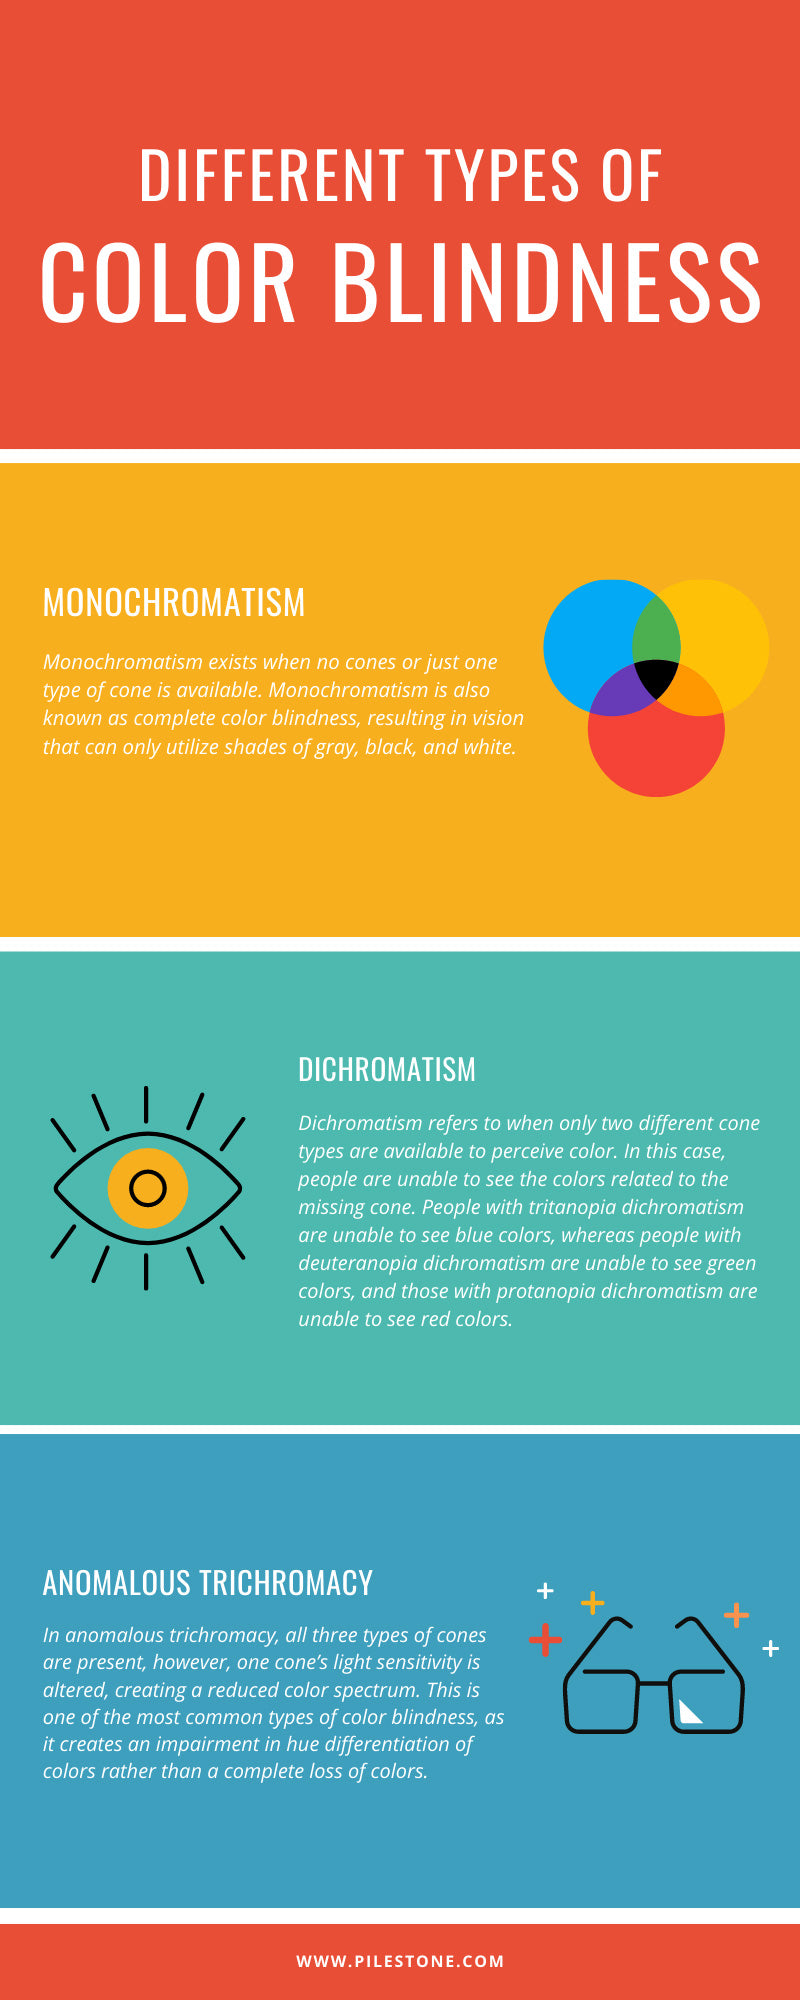 Different Types of Color Blindness